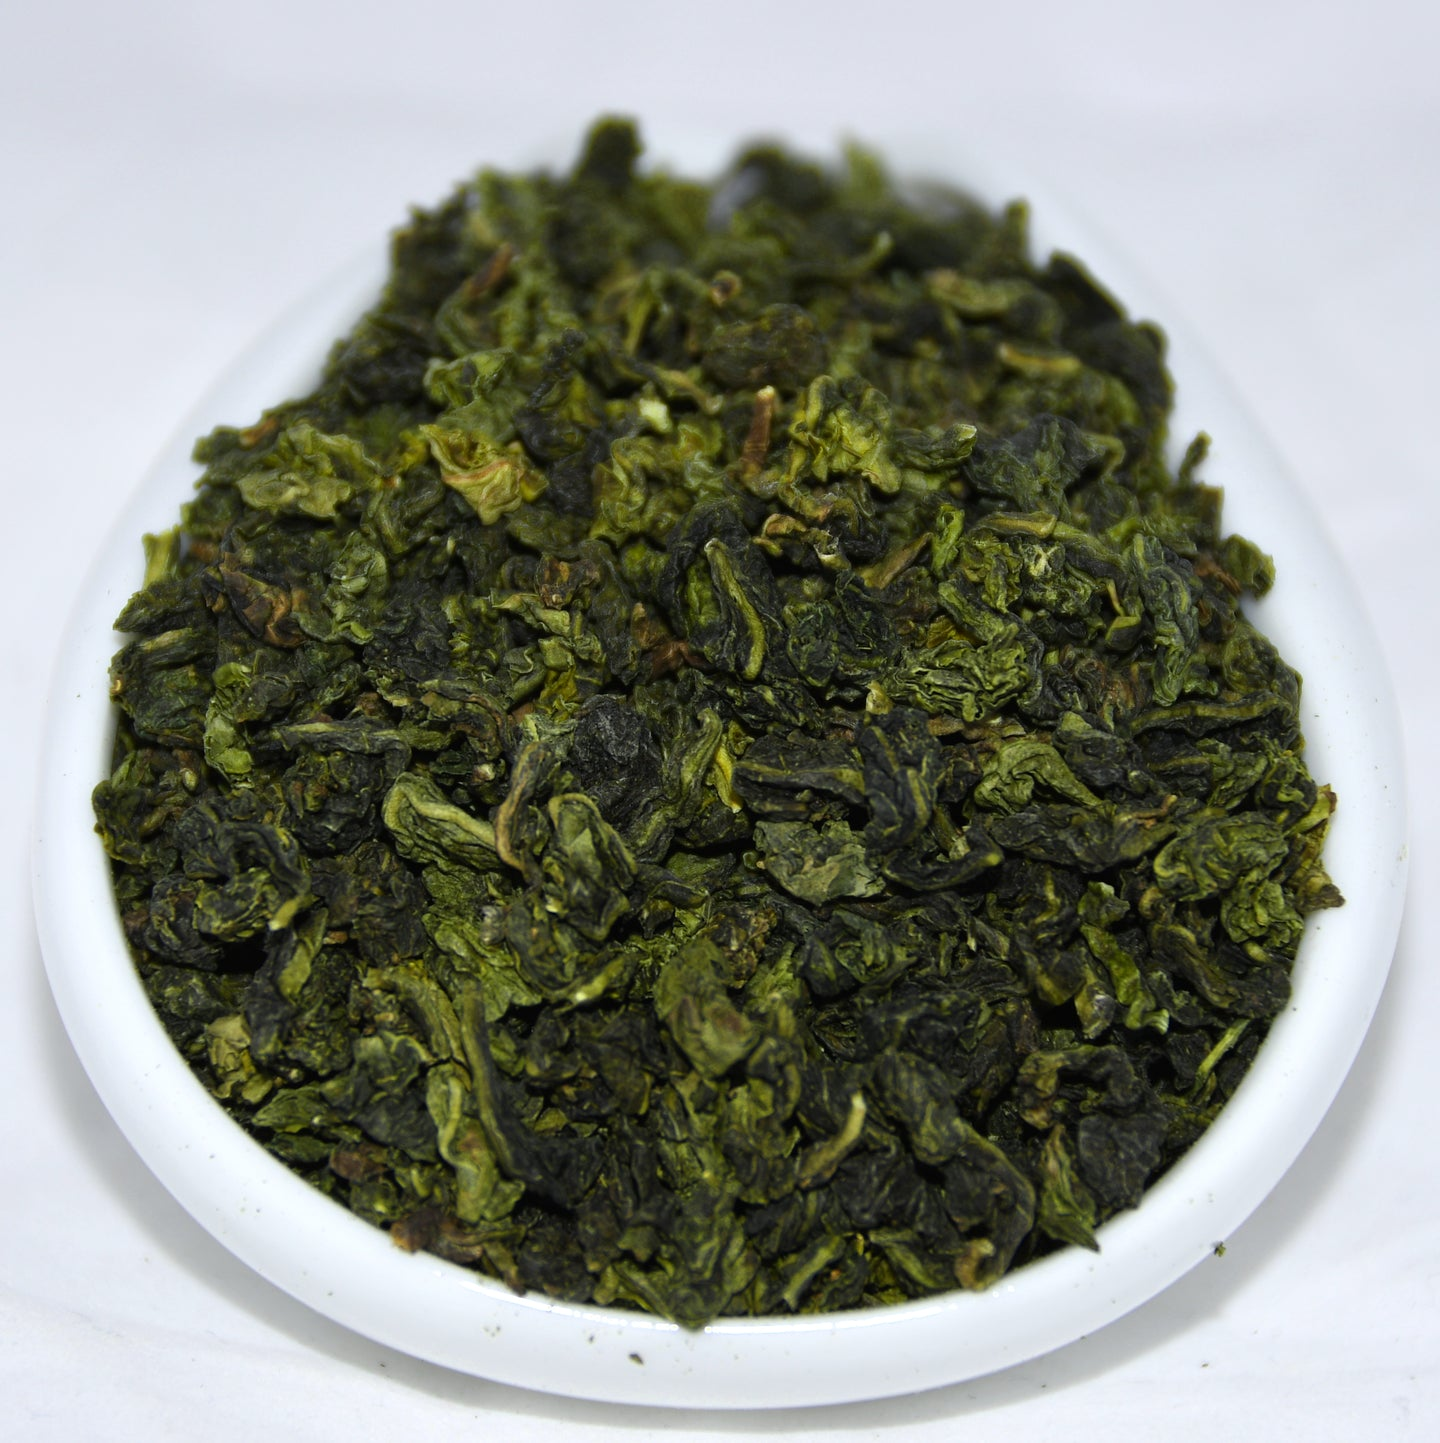 Ti Kuan Yin Iron Goddess Oolong Tea